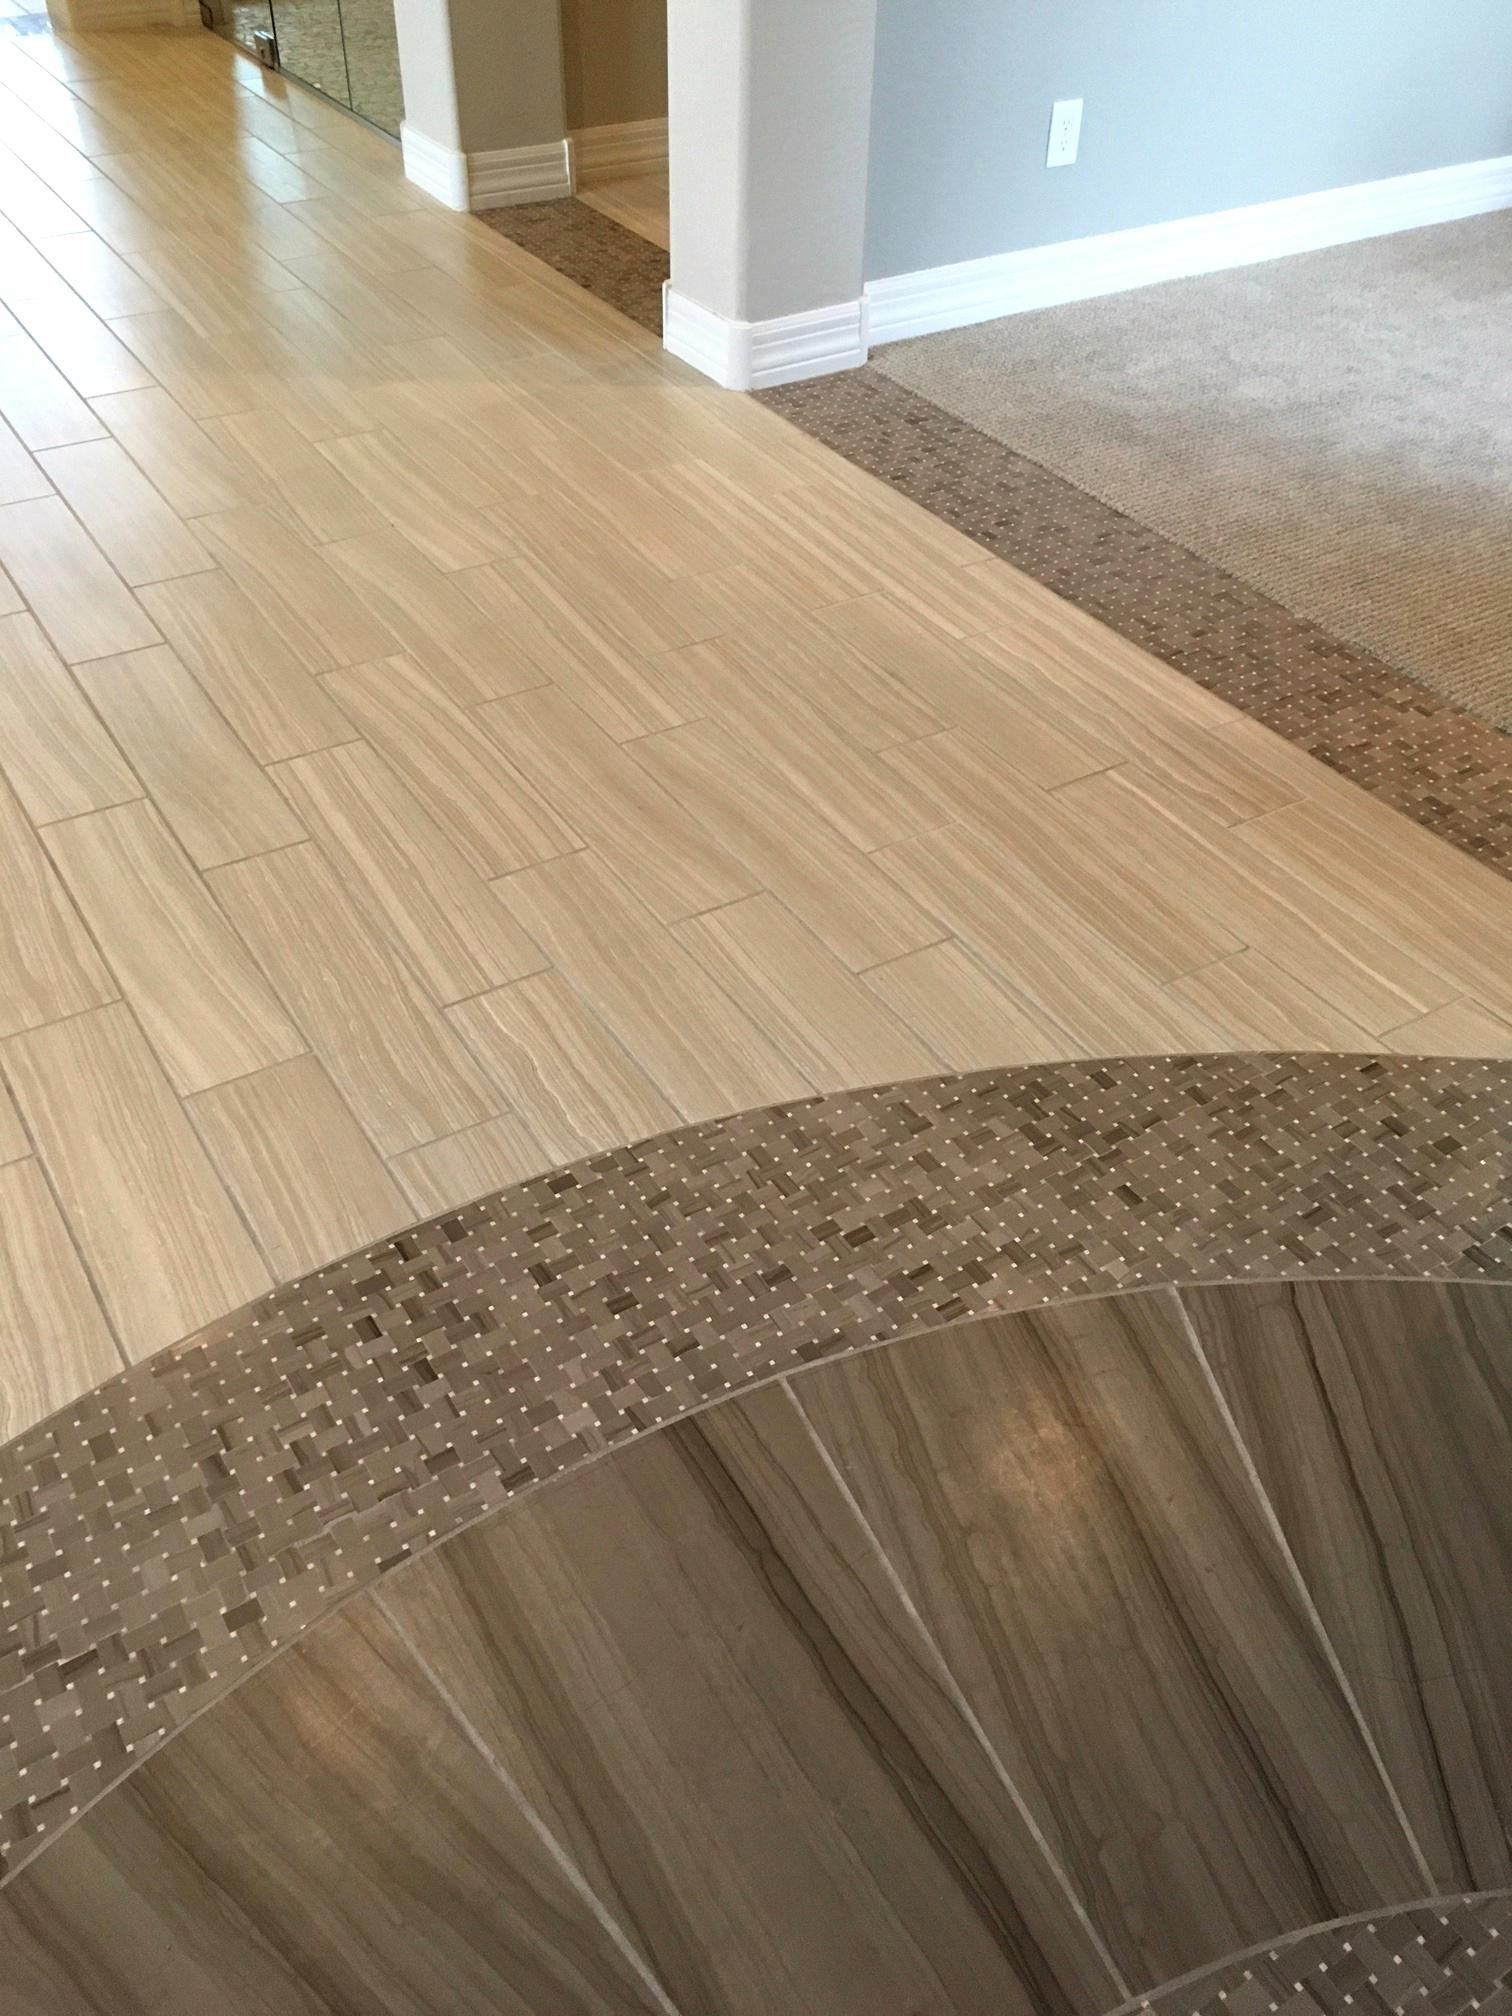 21 Elegant Hardwood Floor With Tile Inlay Unique Flooring Ideas | Tile To Wood Stair Transition | Builder Grade | Upstairs | Residential | Laminate | Entryway